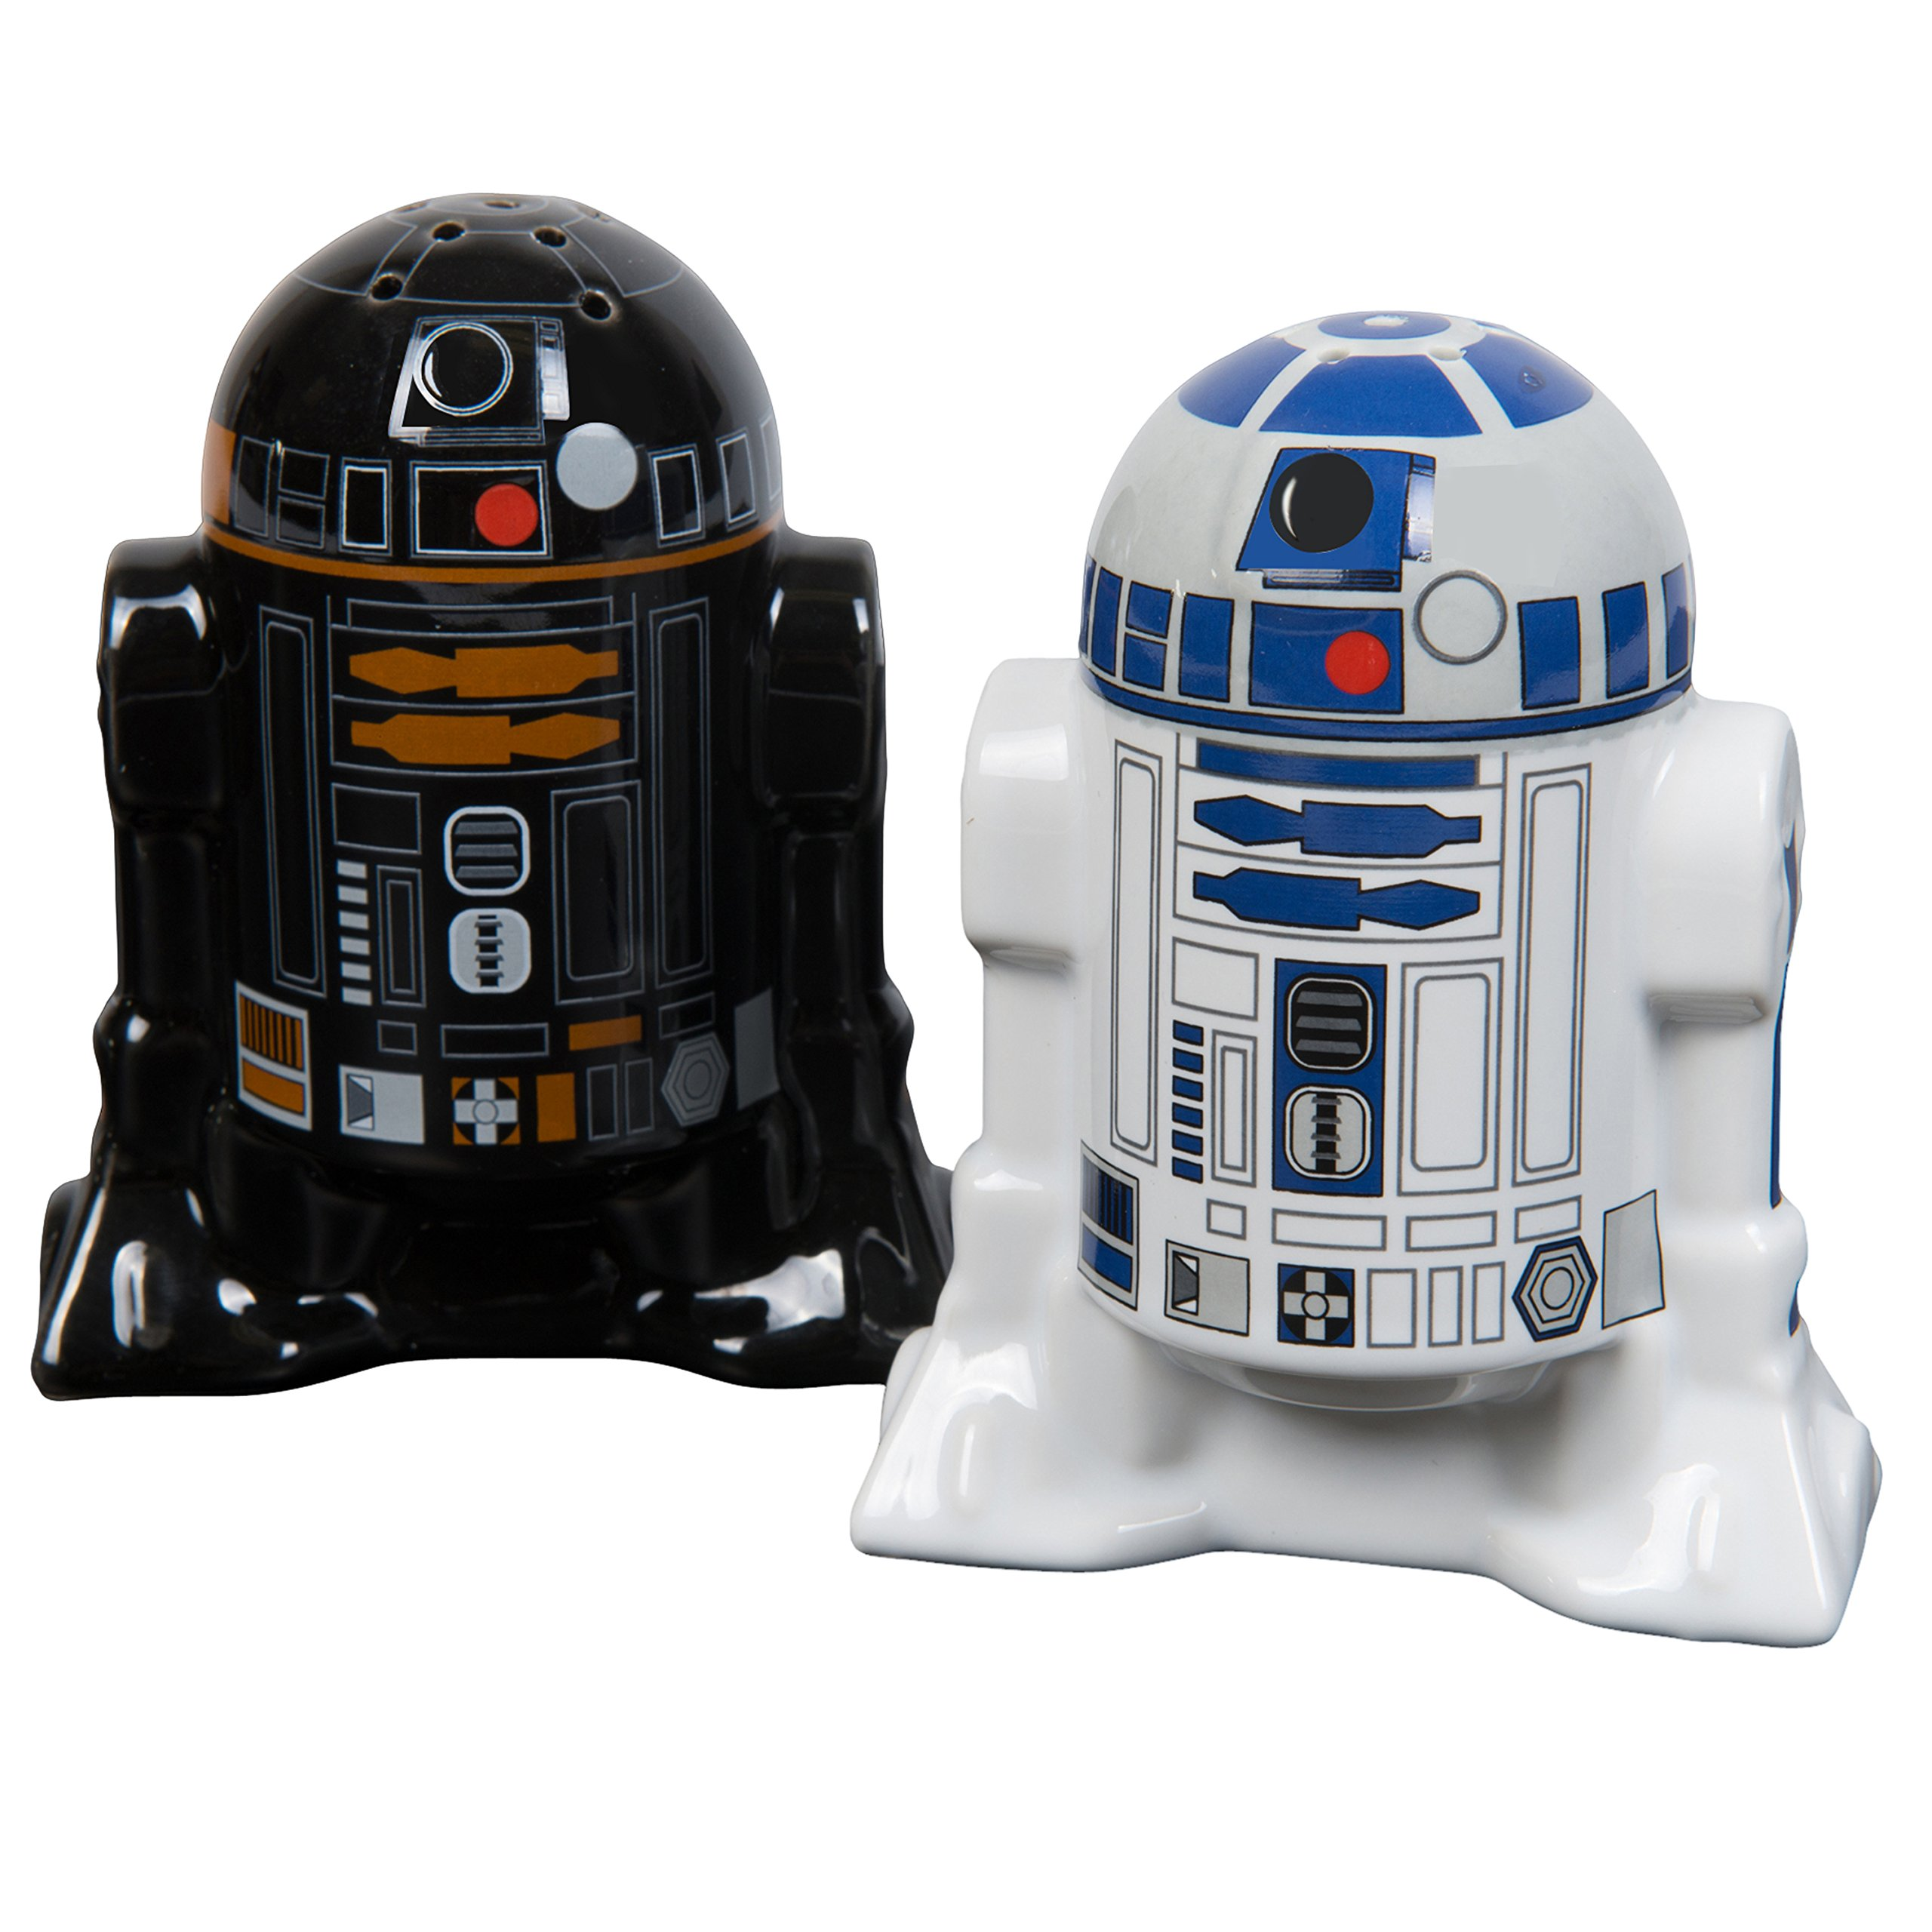 Star Wars Salt and Pepper Shakers - R2D2 and R2Q5 - Add a little Star Wars to every Meal